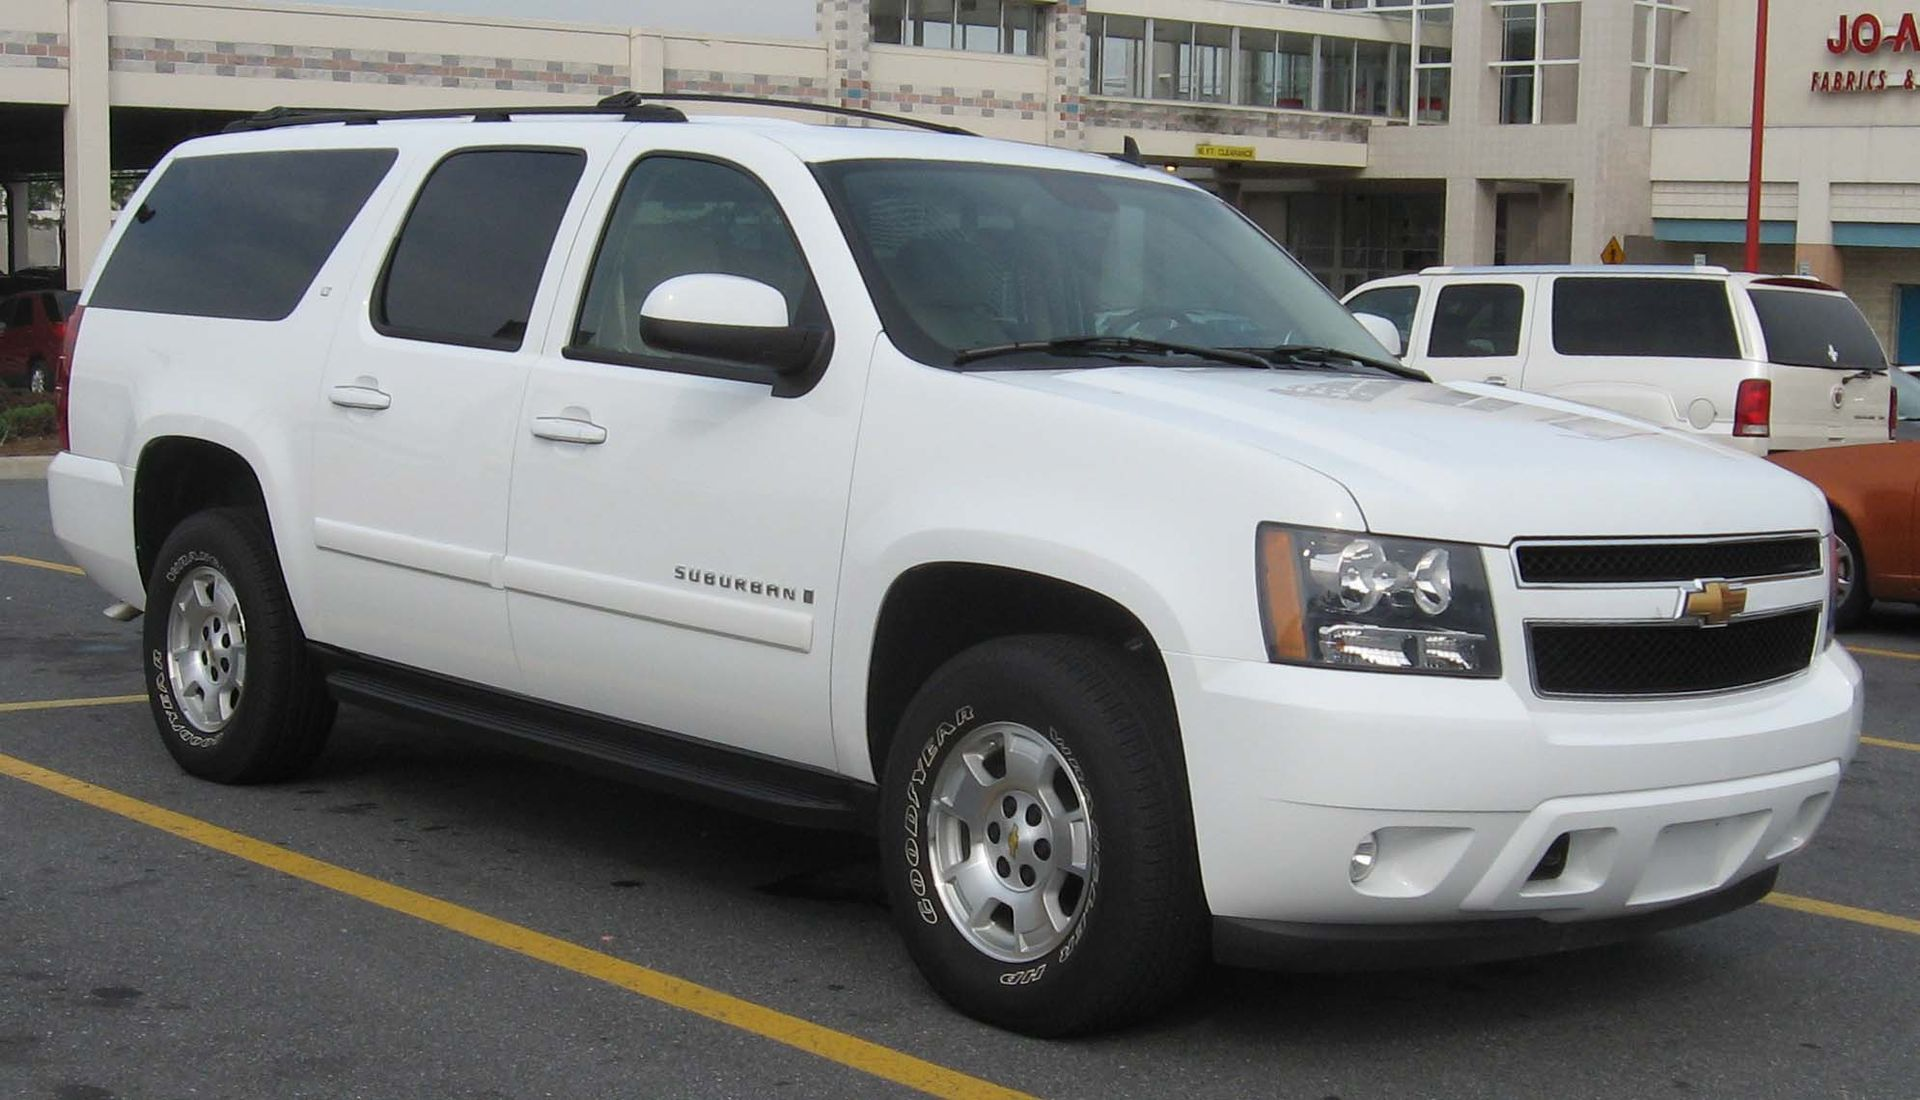 A parked Chevrolet Suburban